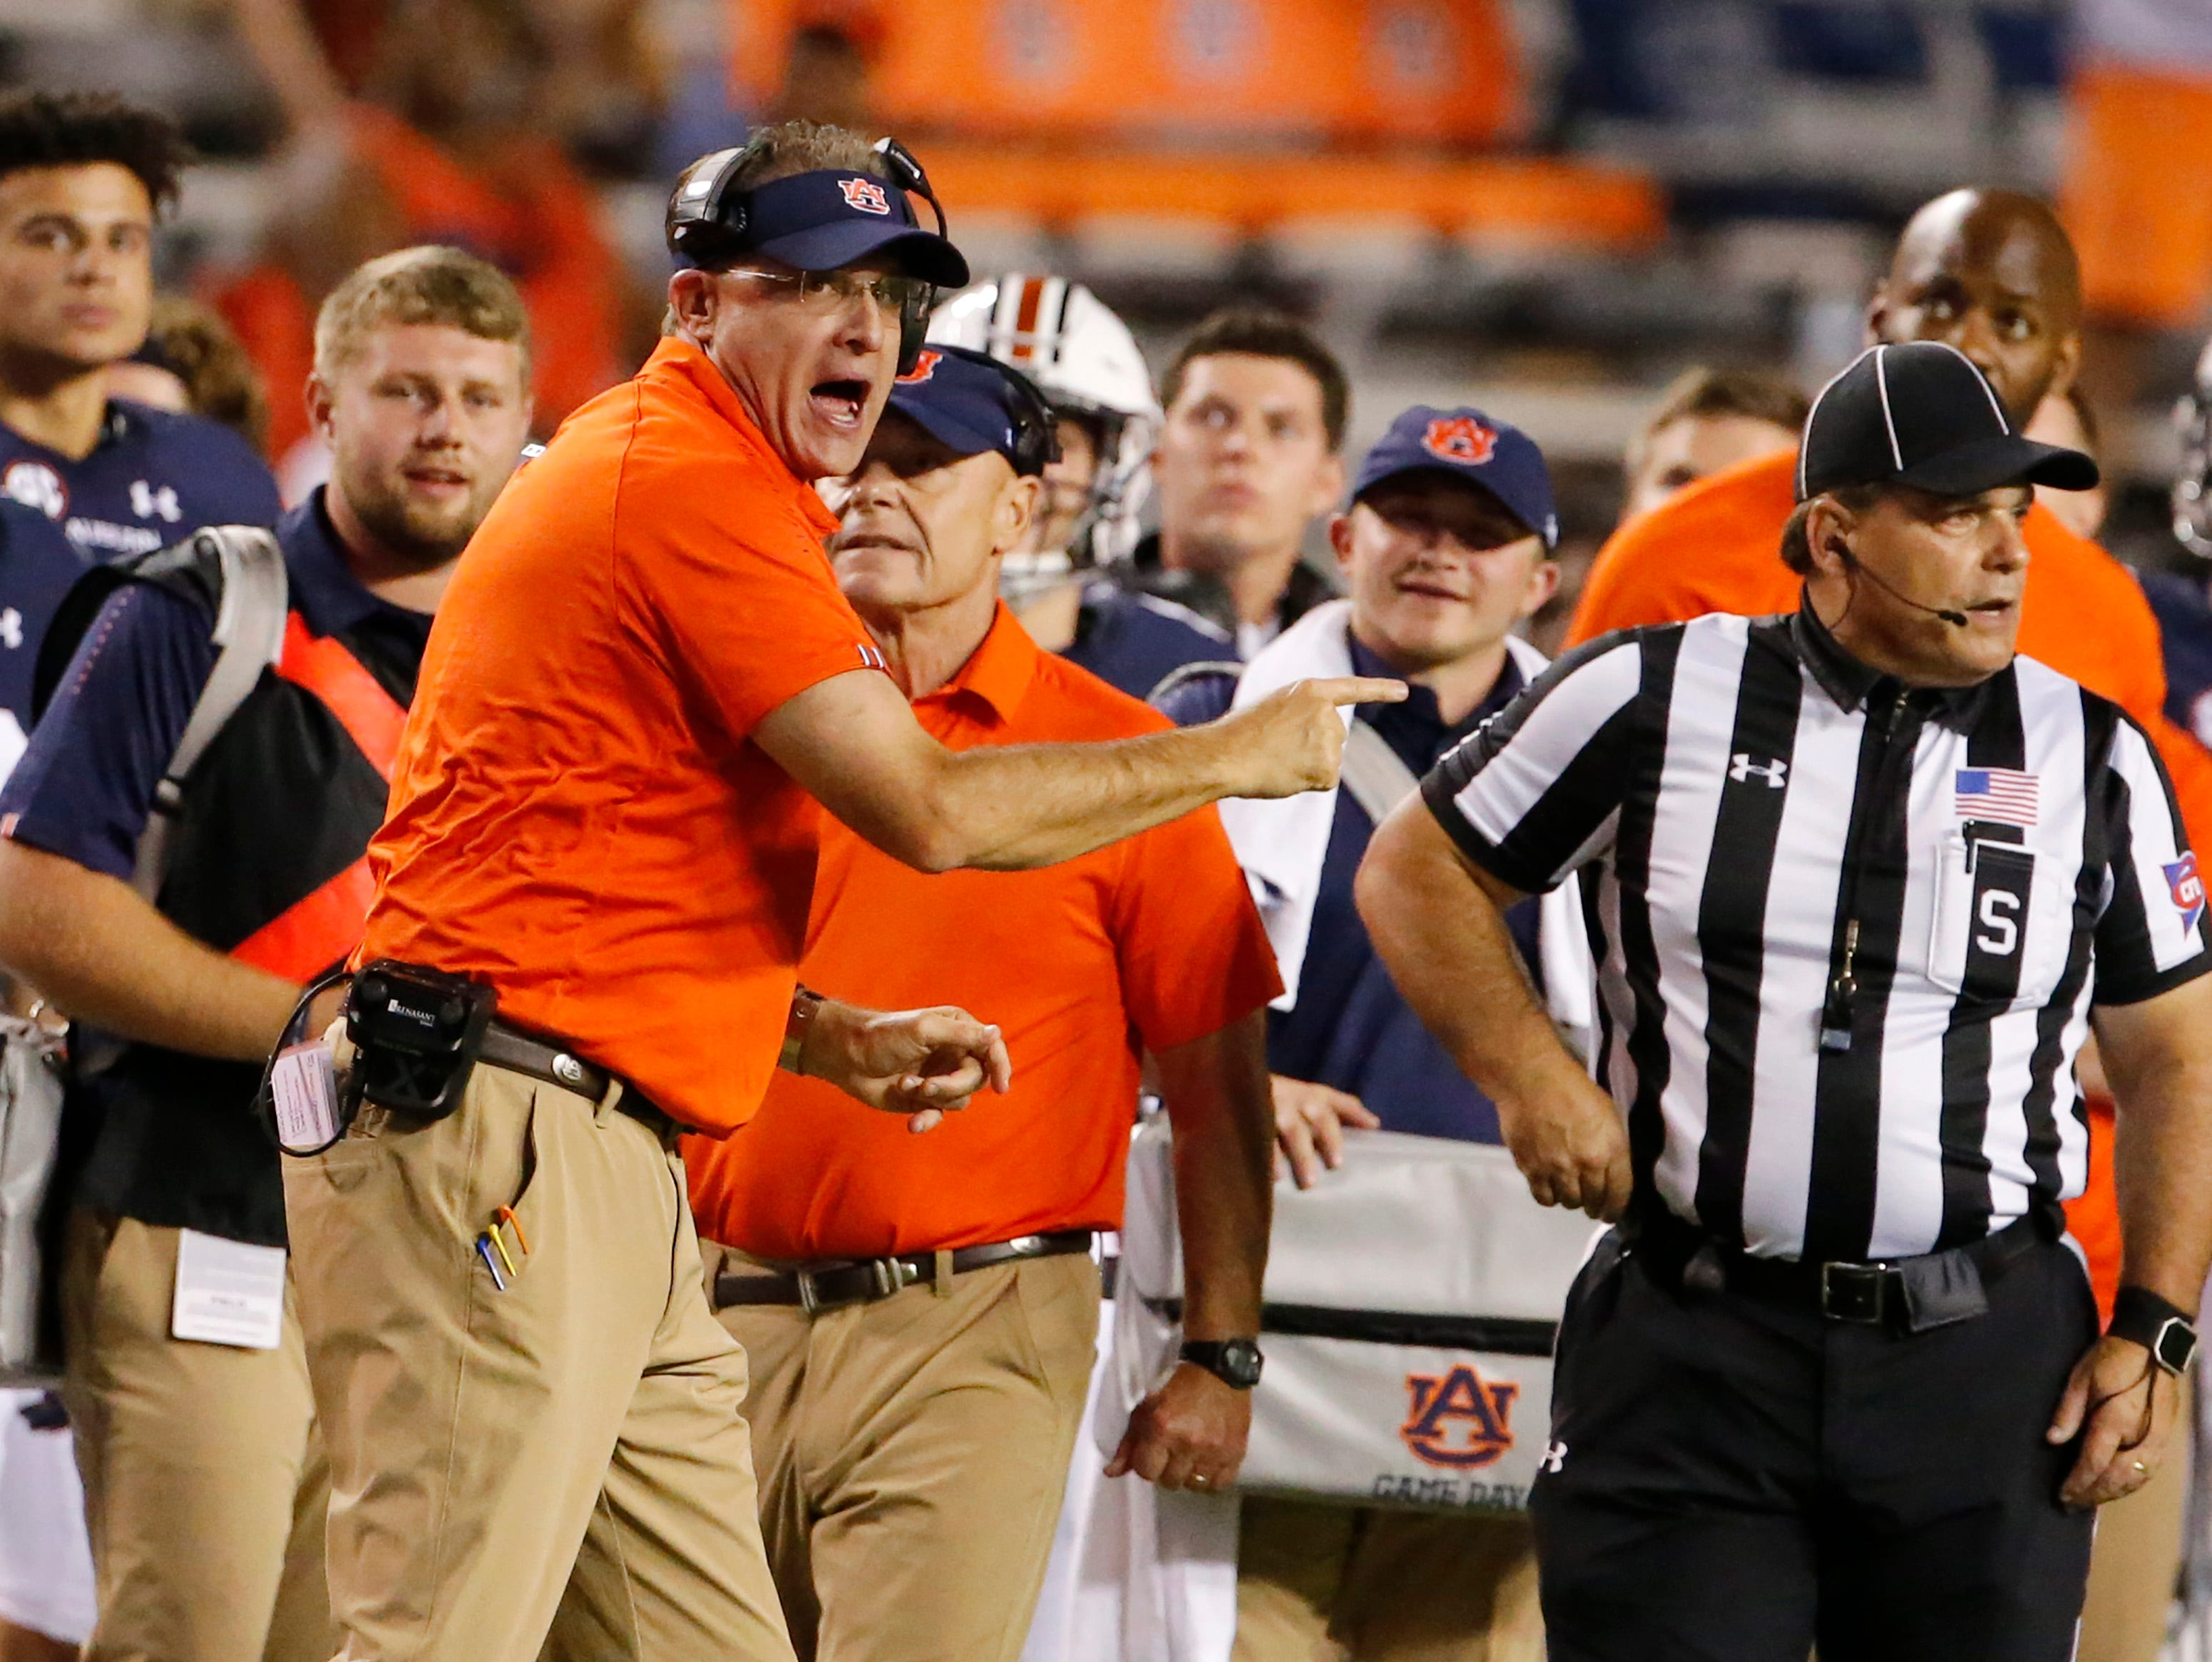 Sep 29, 2018; Auburn, AL, USA; Auburn Tigers head coach Gus Malzahn yells at an official during the second quarter against the Southern Miss Golden Eagles at Jordan-Hare Stadium. Mandatory Credit: John Reed-USA TODAY Sports